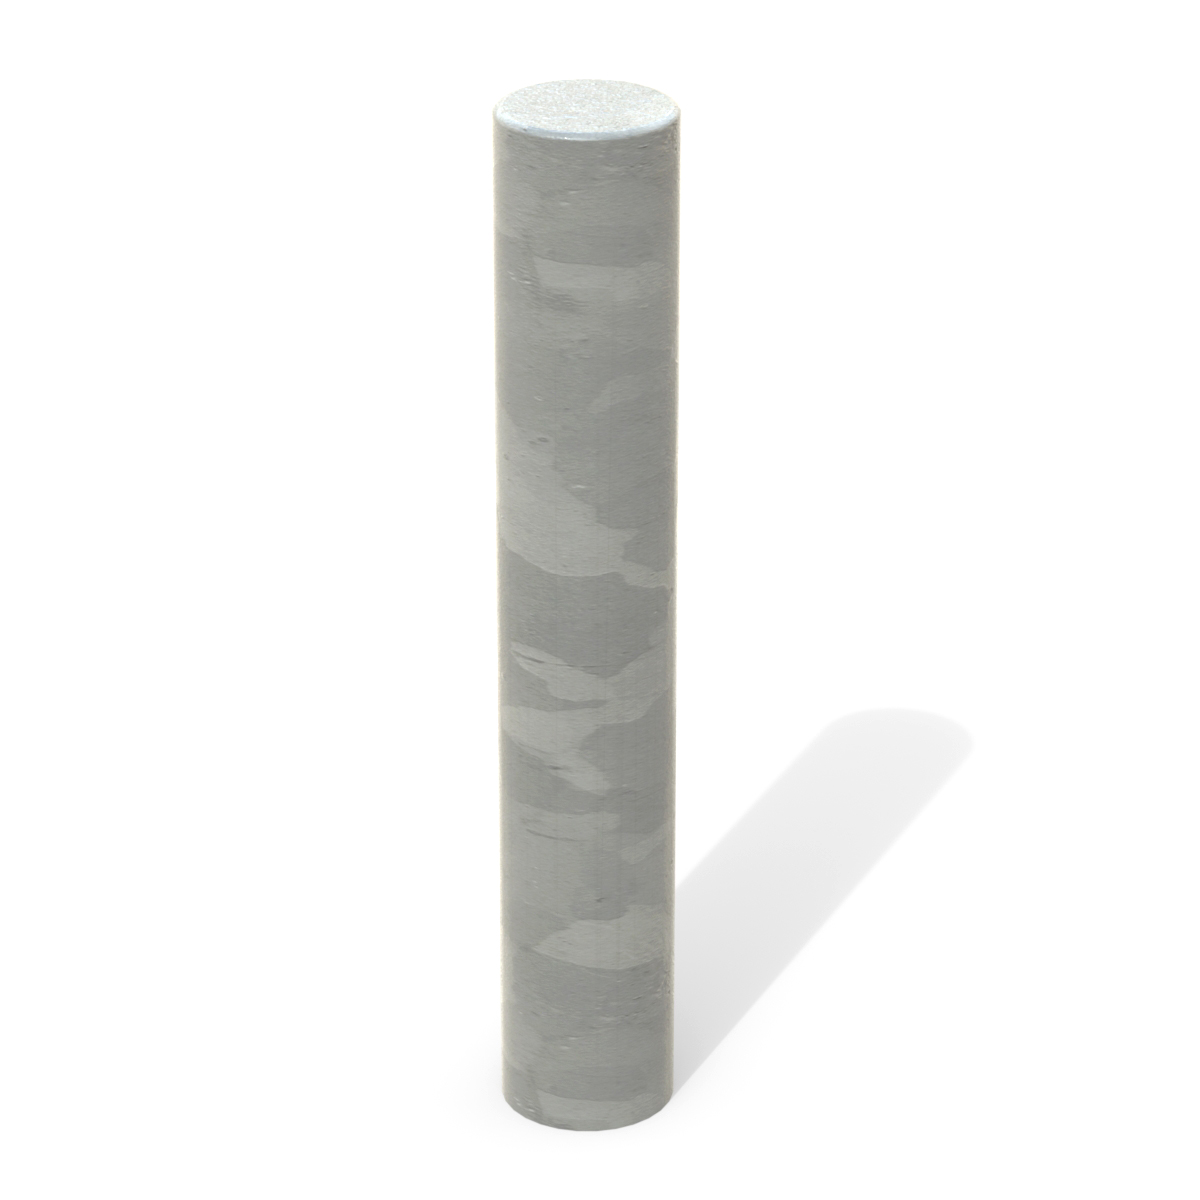 168mm Diameter Titan Steel Bollard